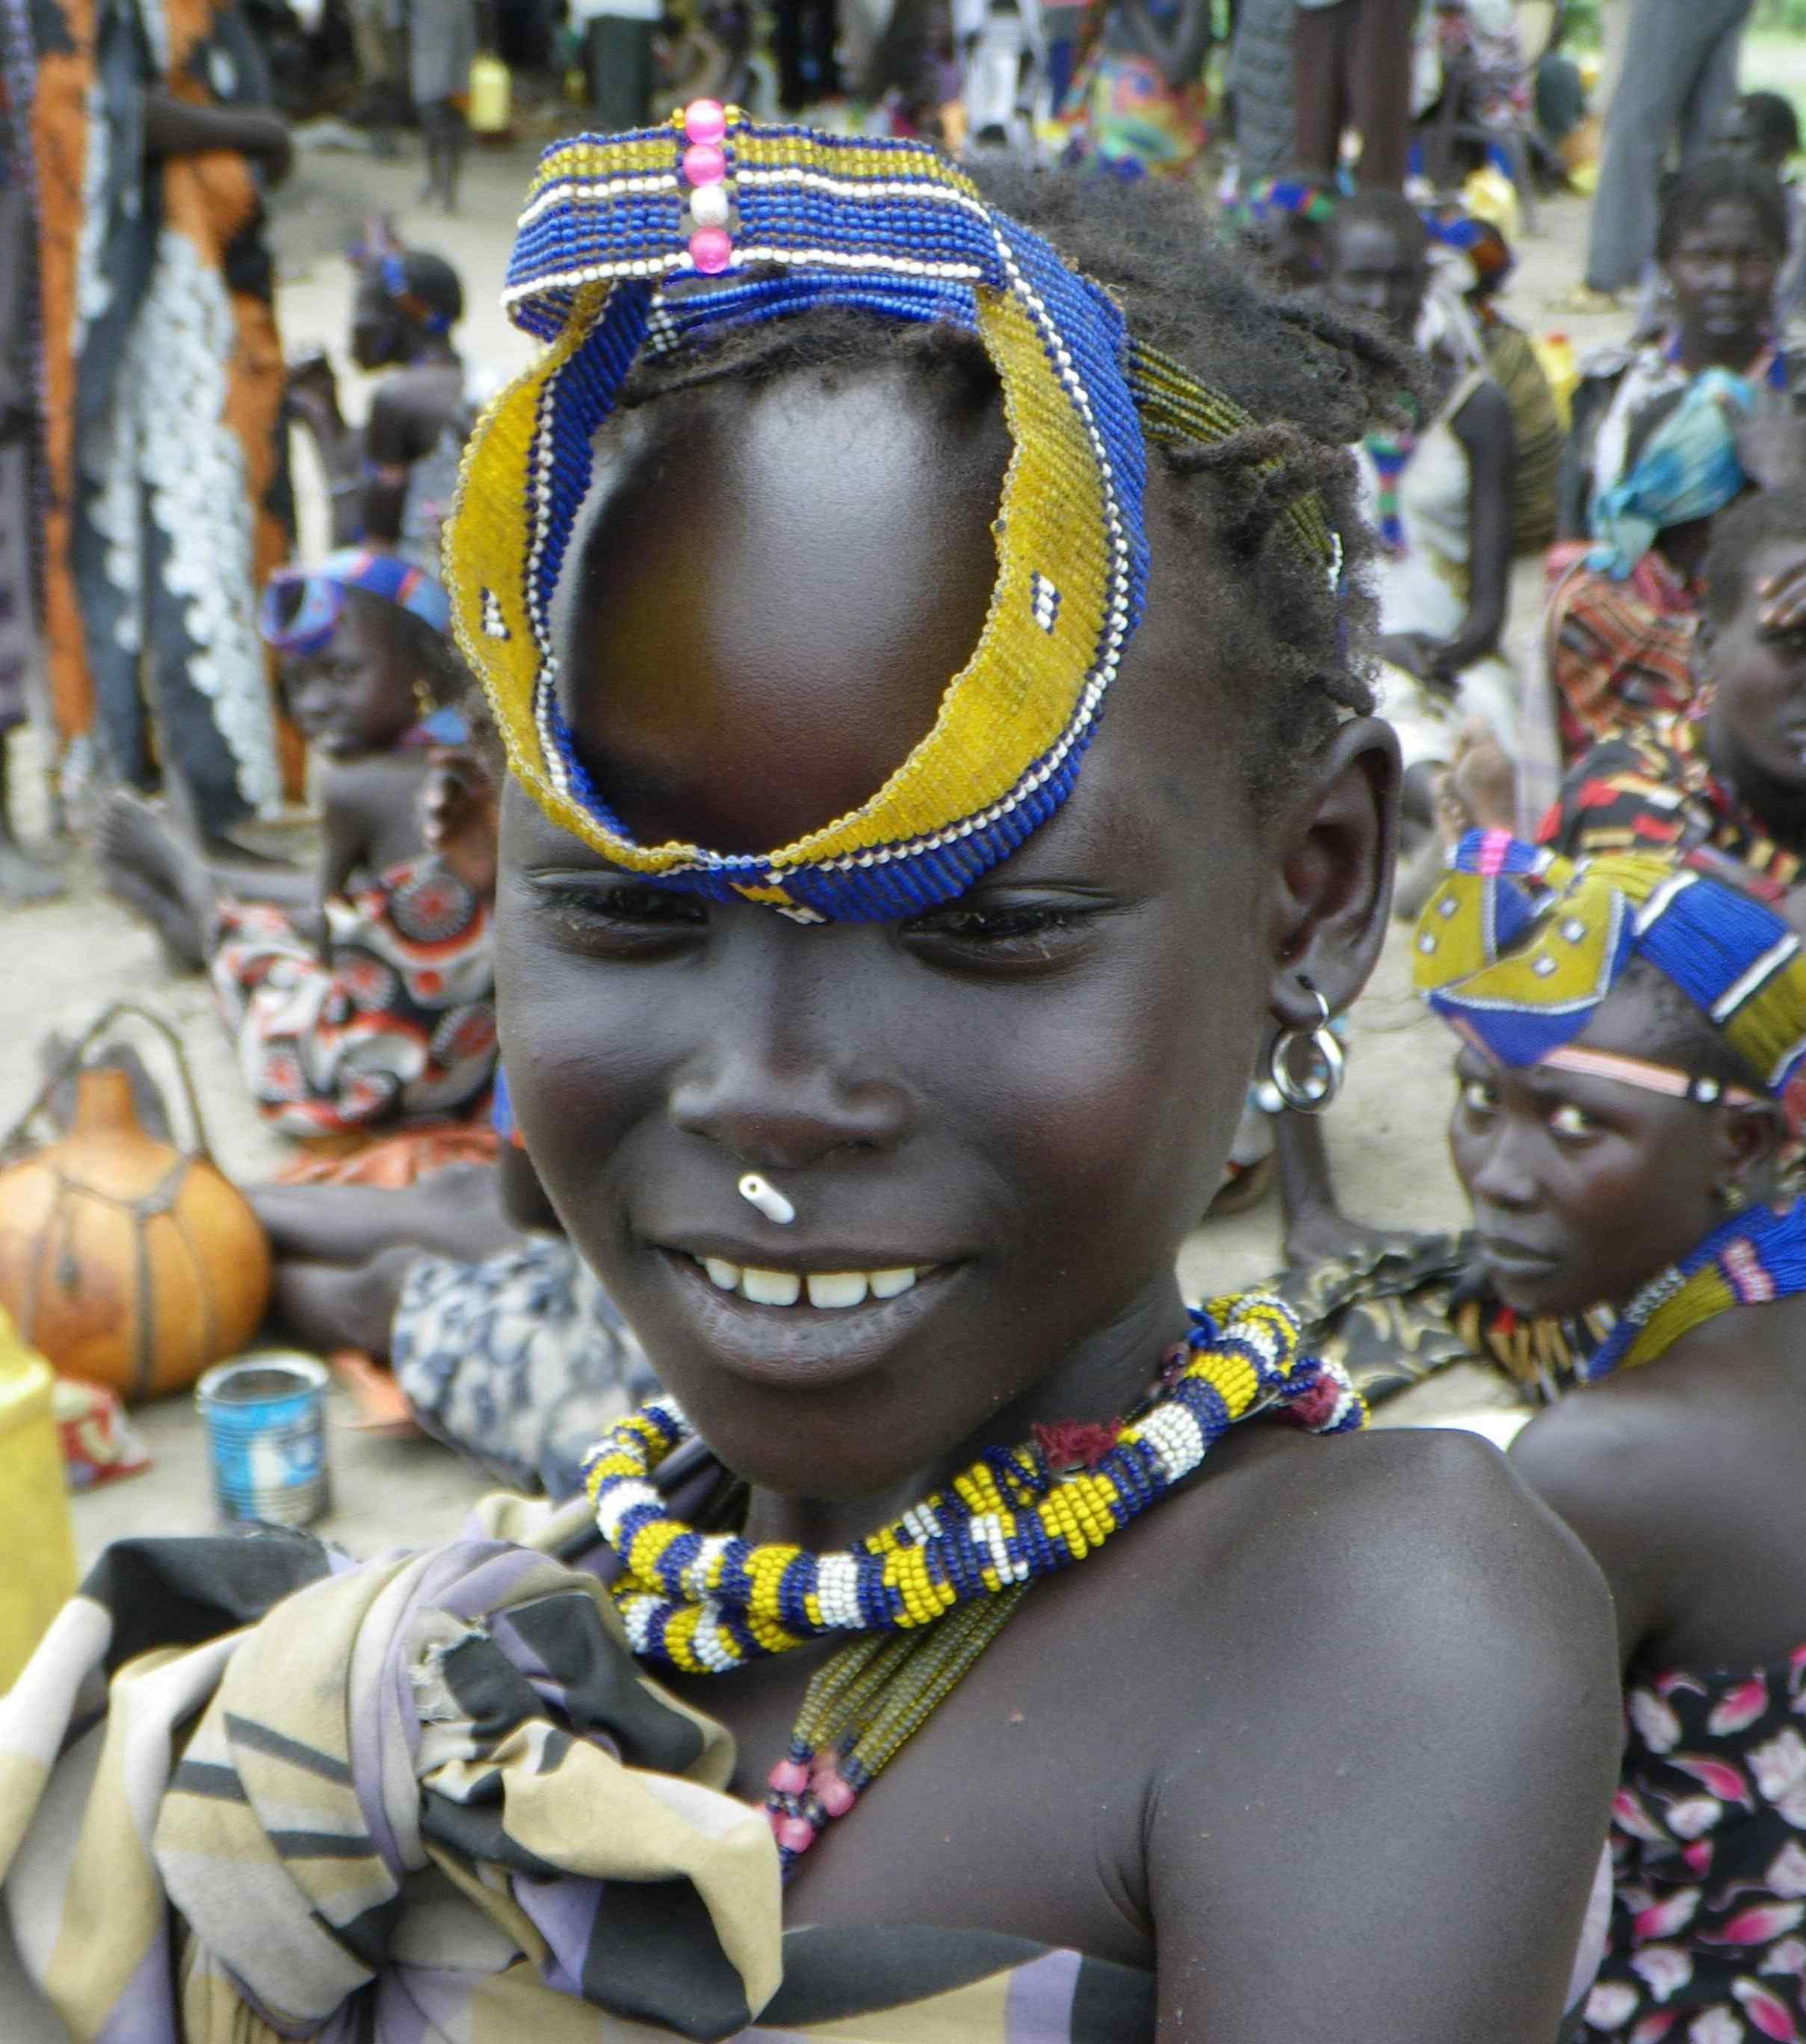 African Baskets: MURLE PEOPLE: THE CATTLE-LOVING WARRIOR PEOPLE OF SOUTH